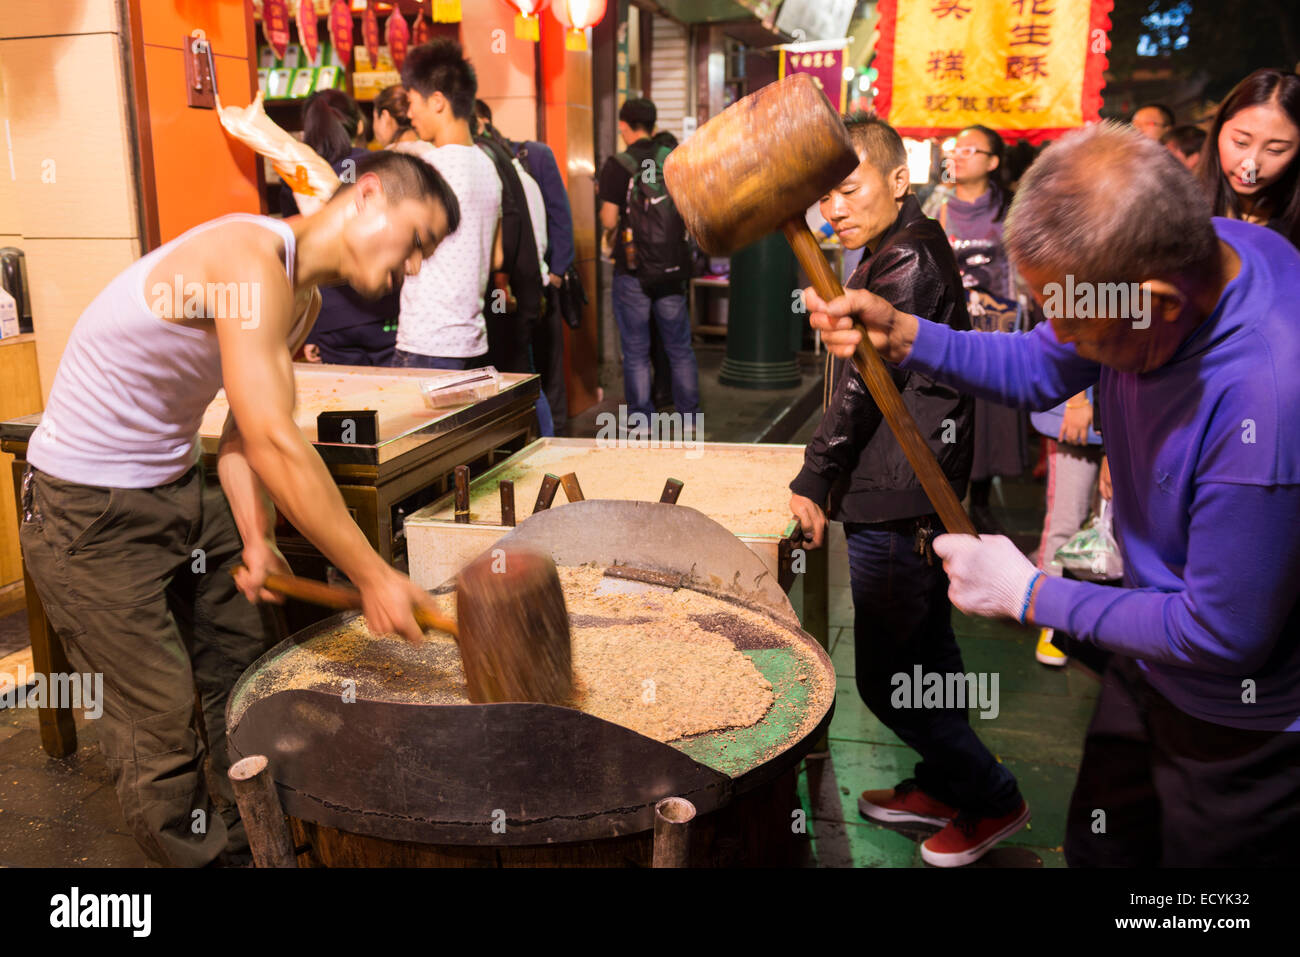 People making brittle candy at Bei Yuan Men Muslim food night market in Xi'an, Shaanxi, China 2014 - Stock Image